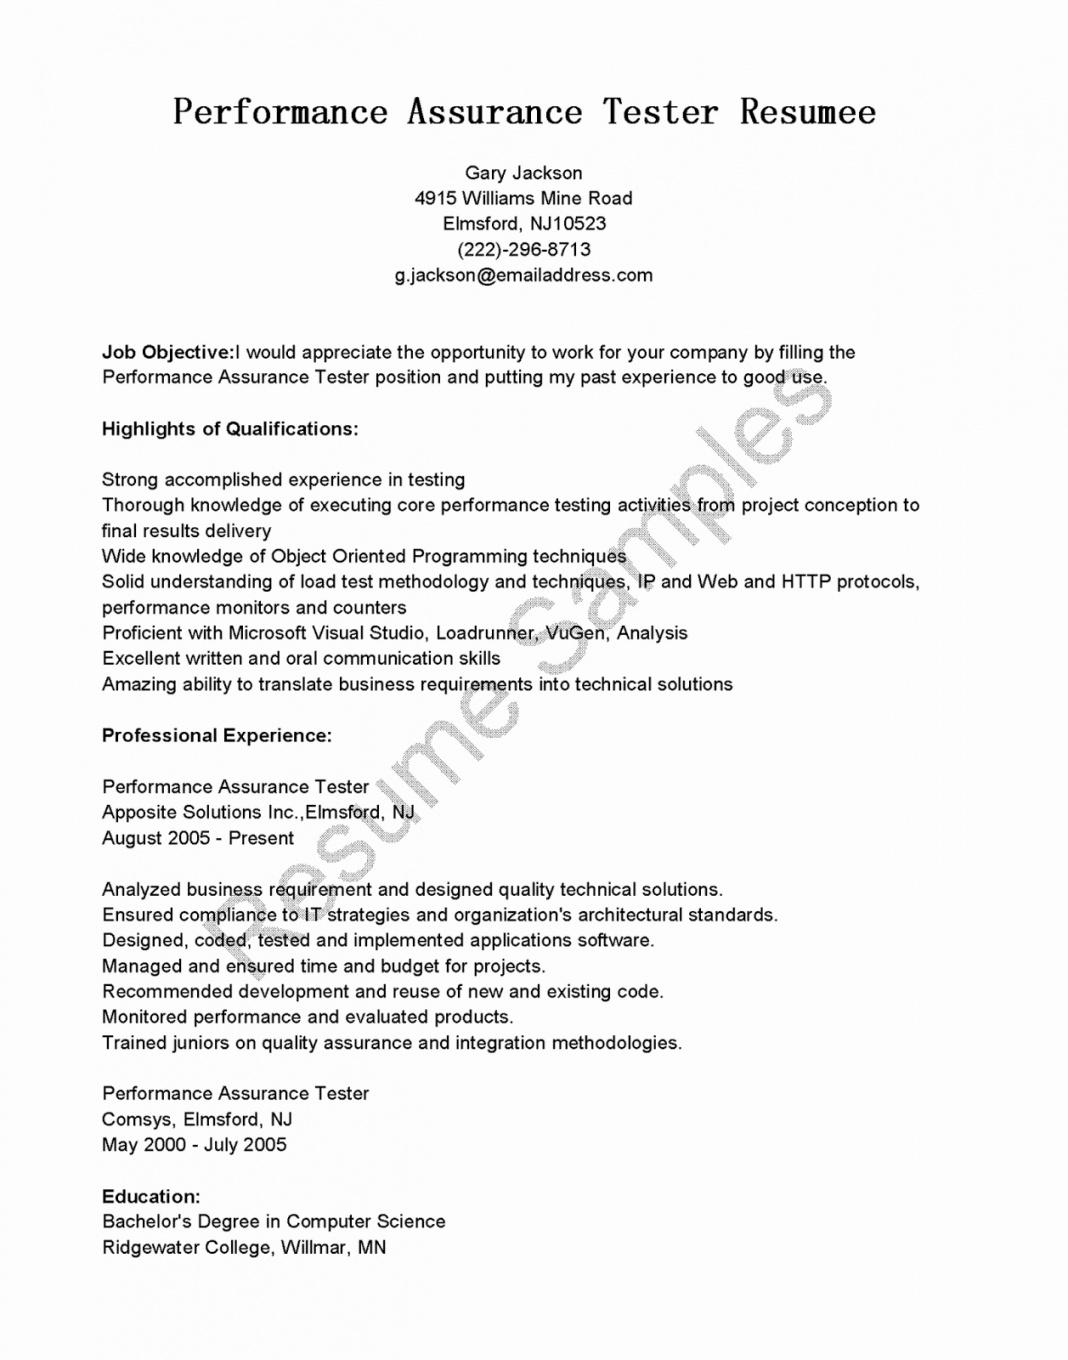 our ghost writer contract template awesome sap hana resume inspirational ghost writer contract template